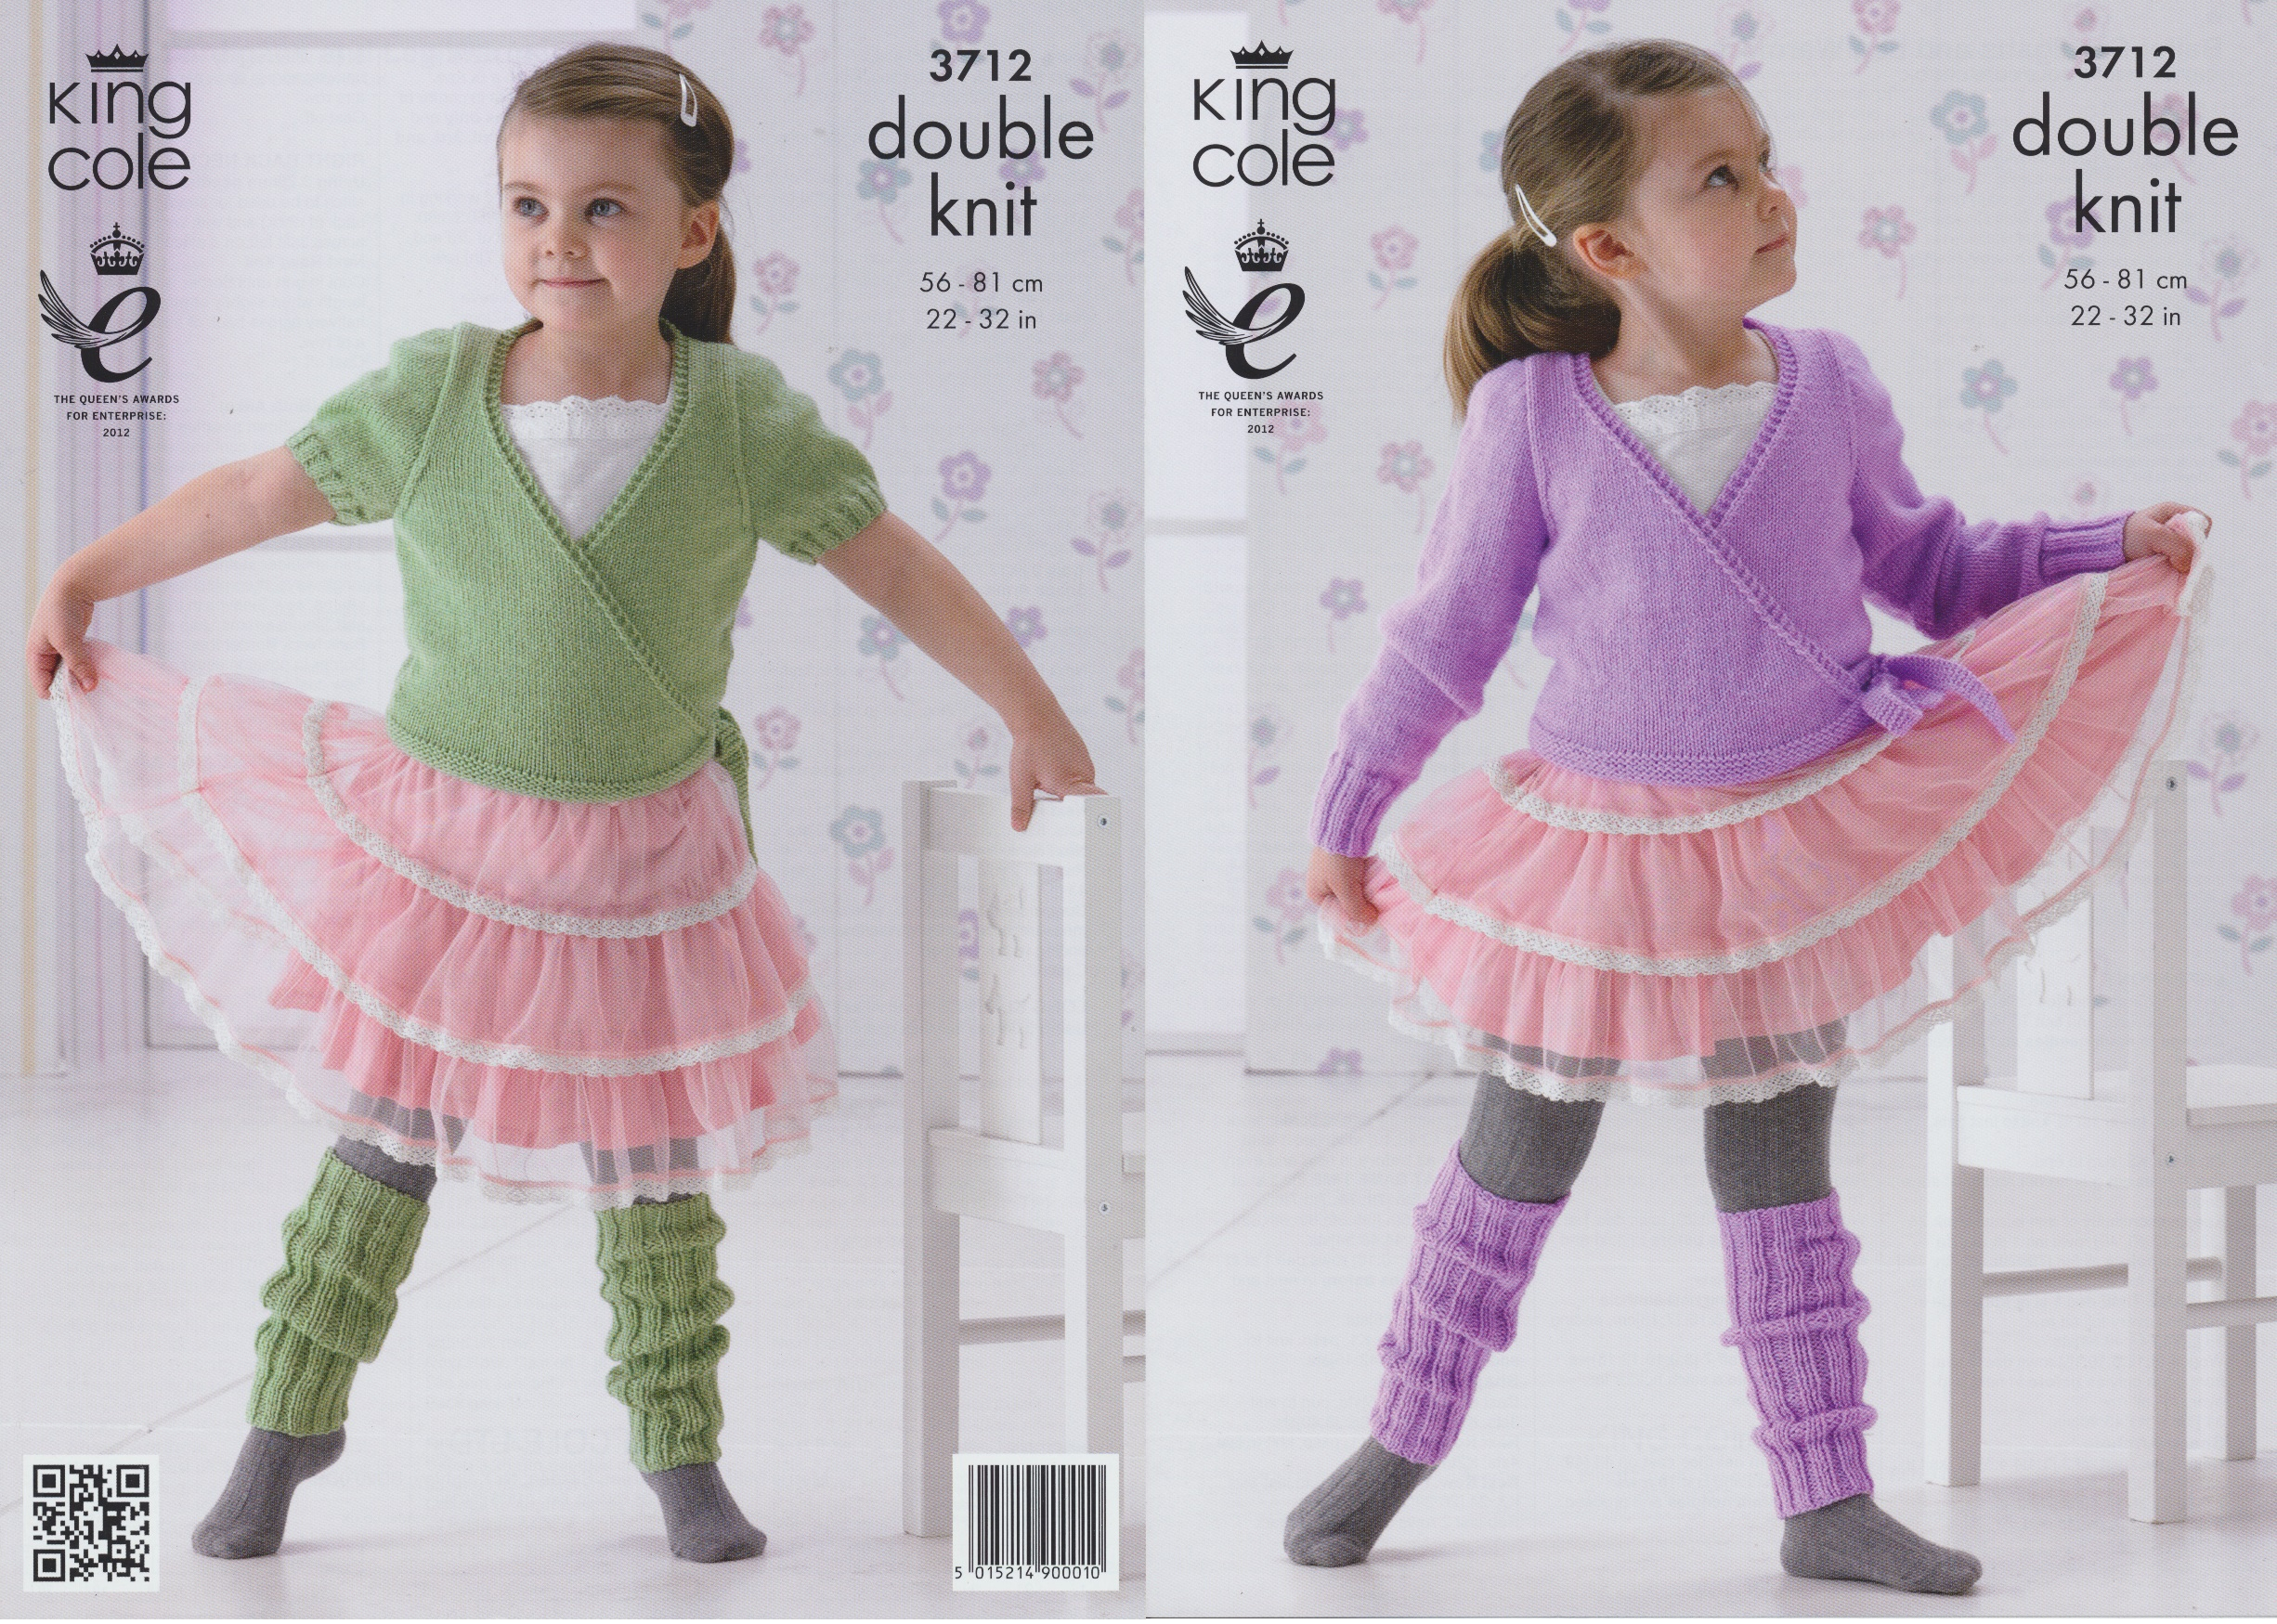 Ballet Cardigan Knitting Pattern Details About Girls Dk Ballet Cardigans Leg Warmers Knitting Pattern King Cole 3712